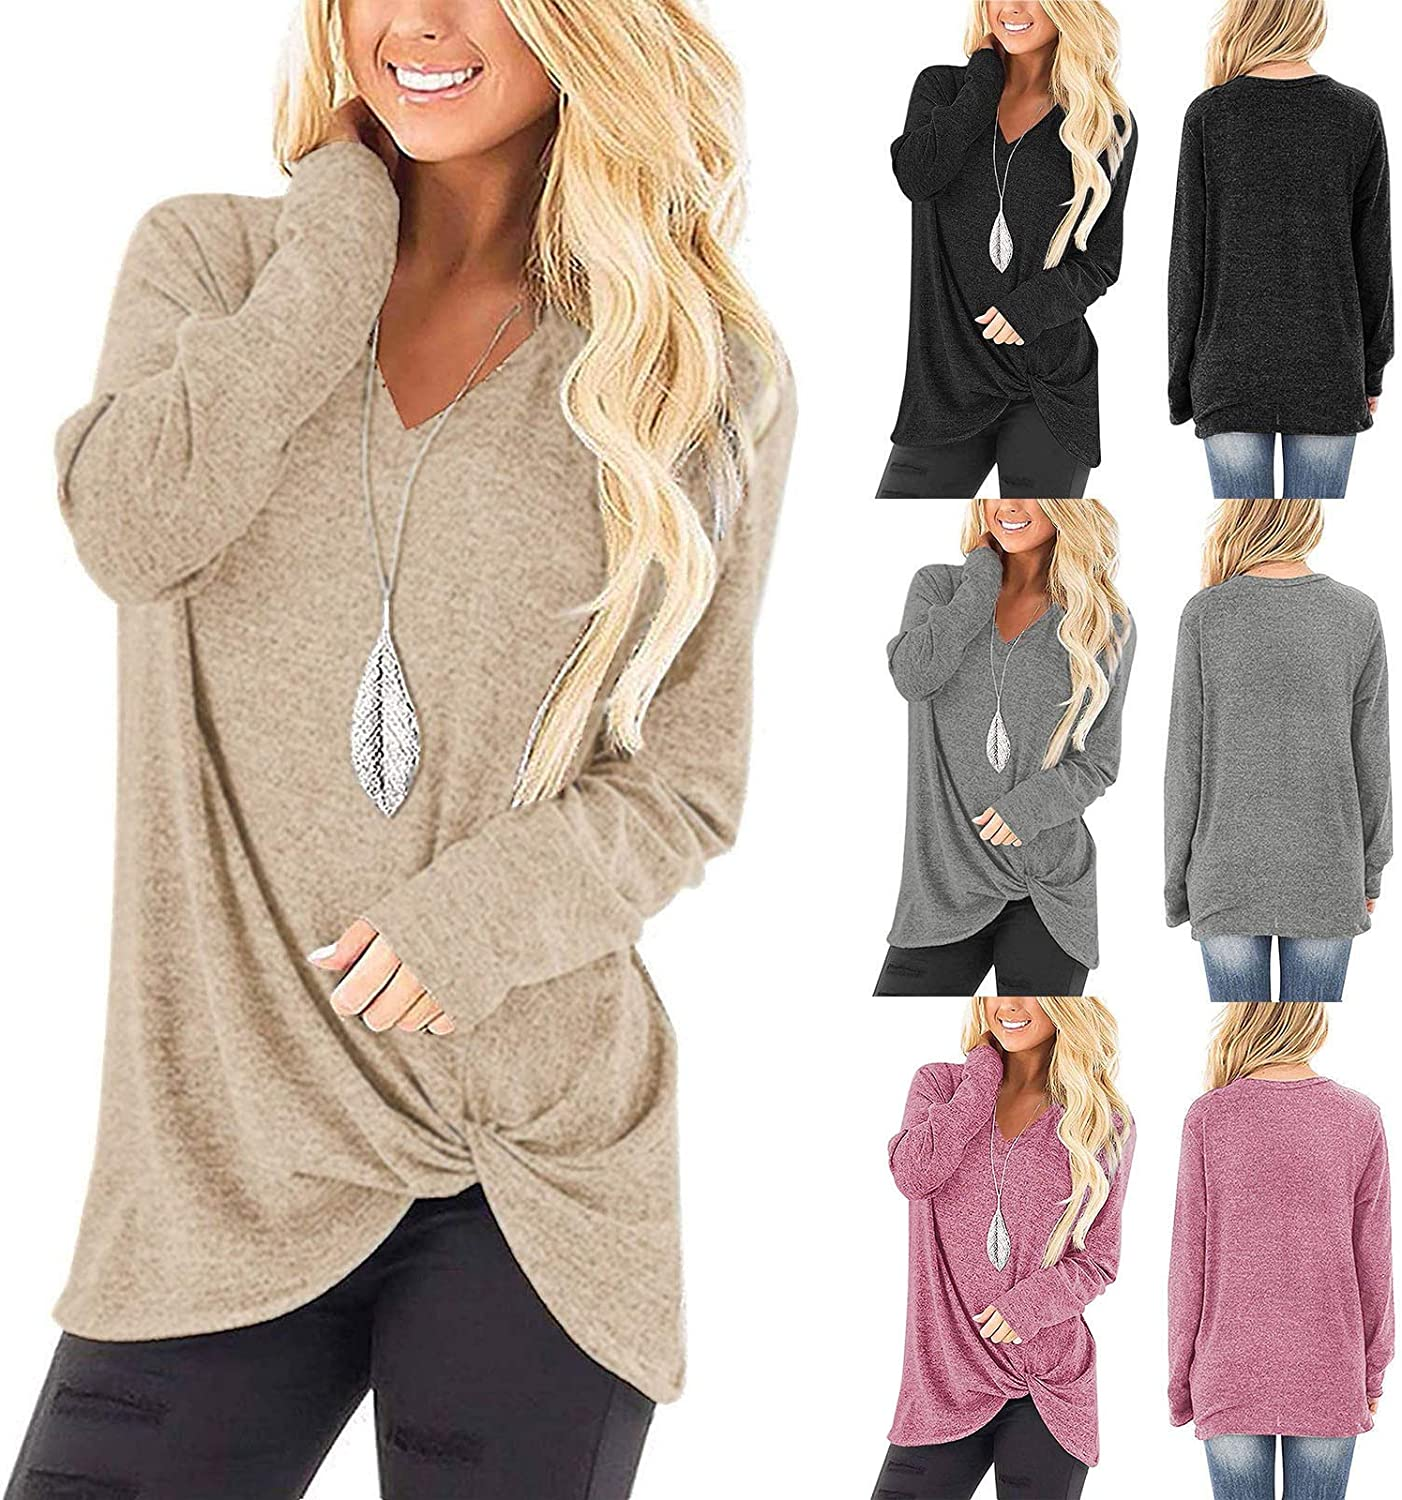 UOCUFY Women Long Sleeve Tops, Womens Tunics Shirts Tops Long Sleeve Loose Casual Crewneck Comfy Pullover Tops